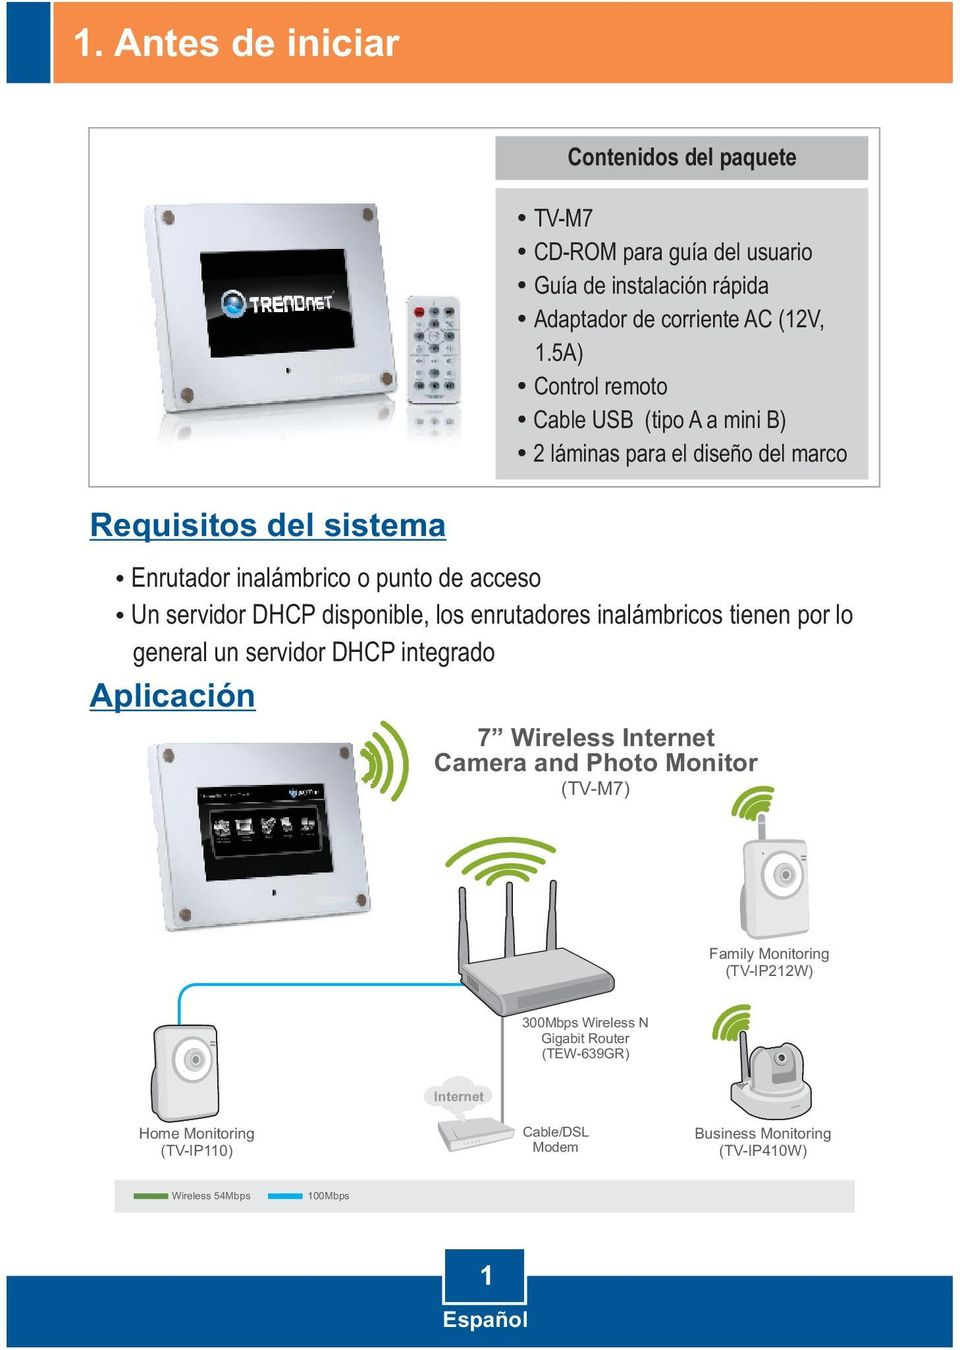 enrutadores inalámbricos tienen por lo general un servidor DHCP integrado Aplicación 7 Wireless Internet Camera and Photo Monitor (TV-M7) Family Monitoring